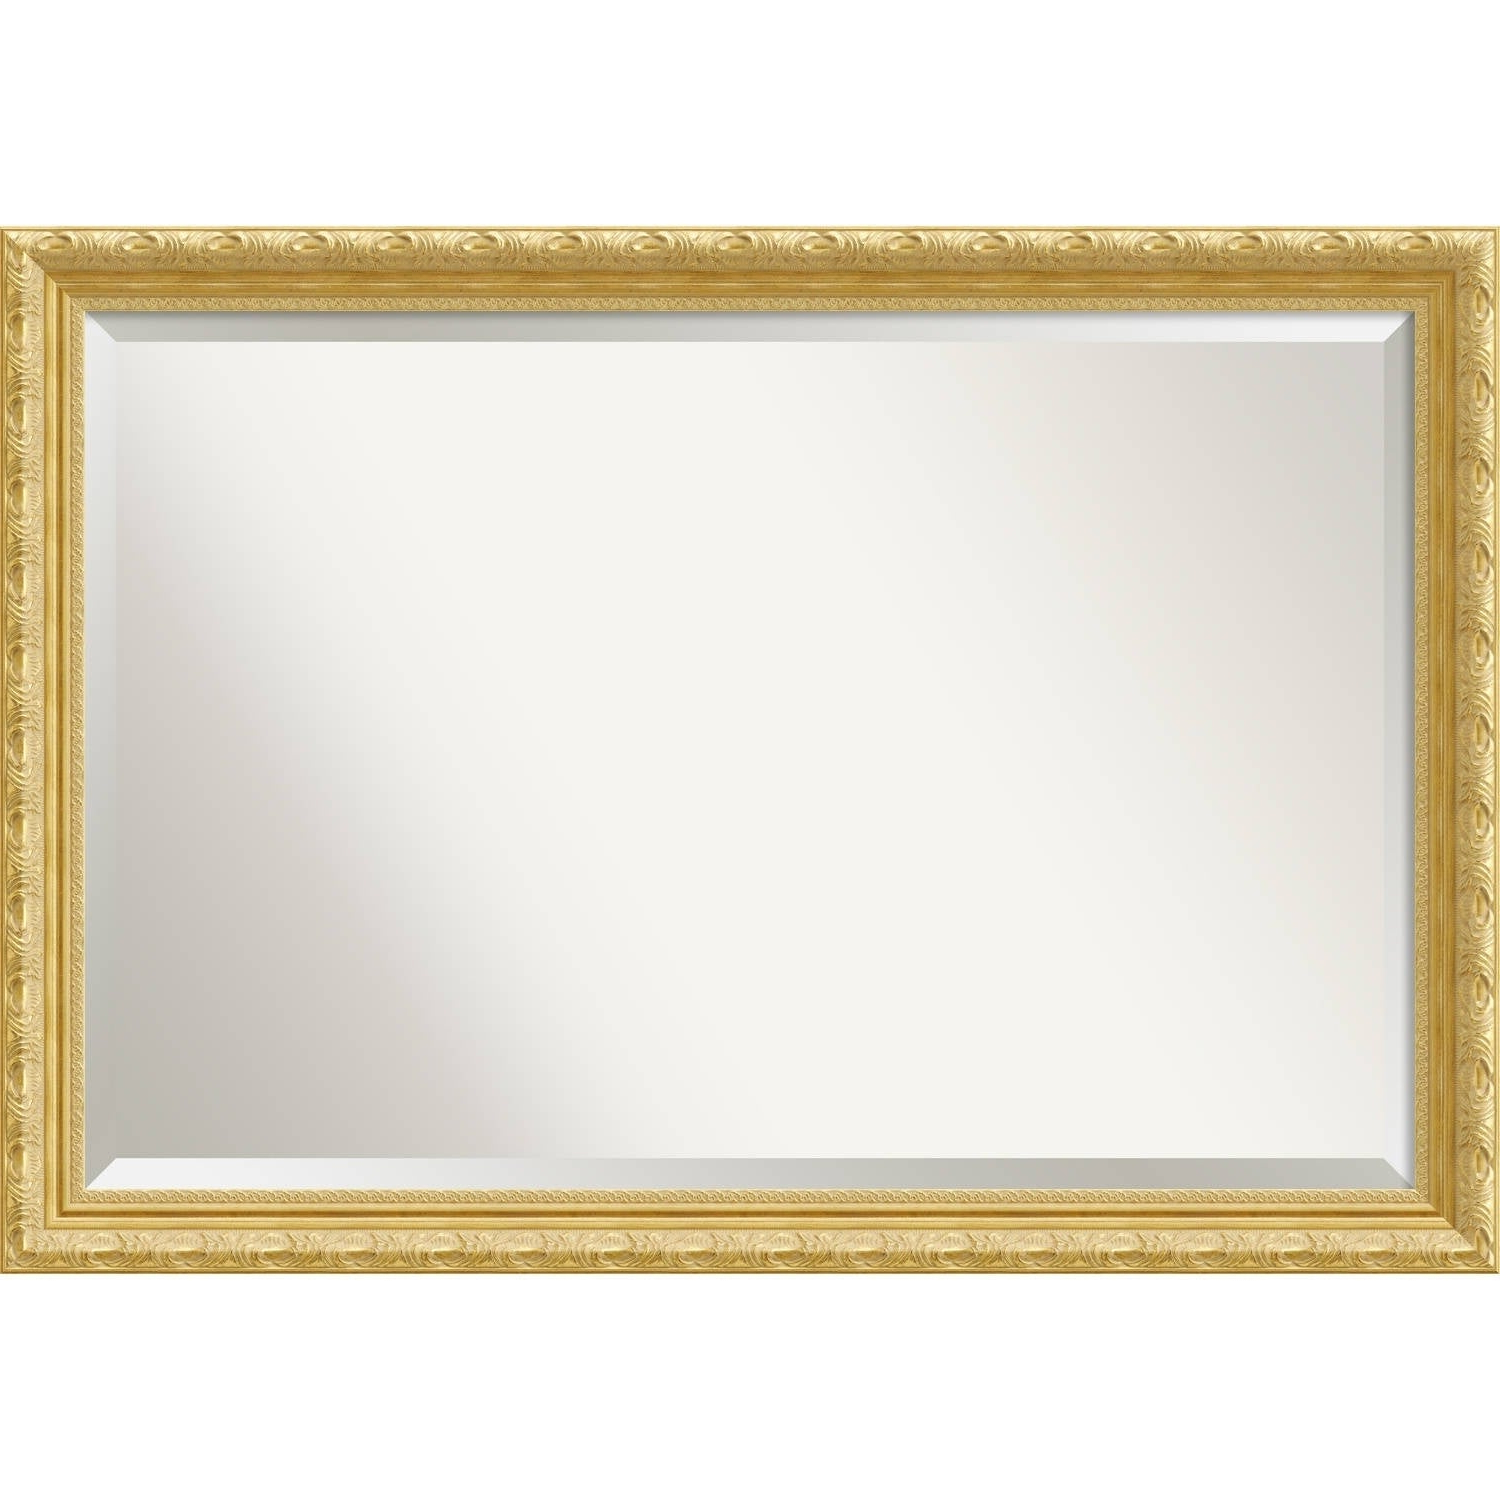 Preferred Wall Mirror Extra Large, Versailles Gold 40 X 28 Inch – Antique Gold –  Extra Large – 40 X 28 Inch Intended For Extra Large Framed Wall Mirrors (View 20 of 20)